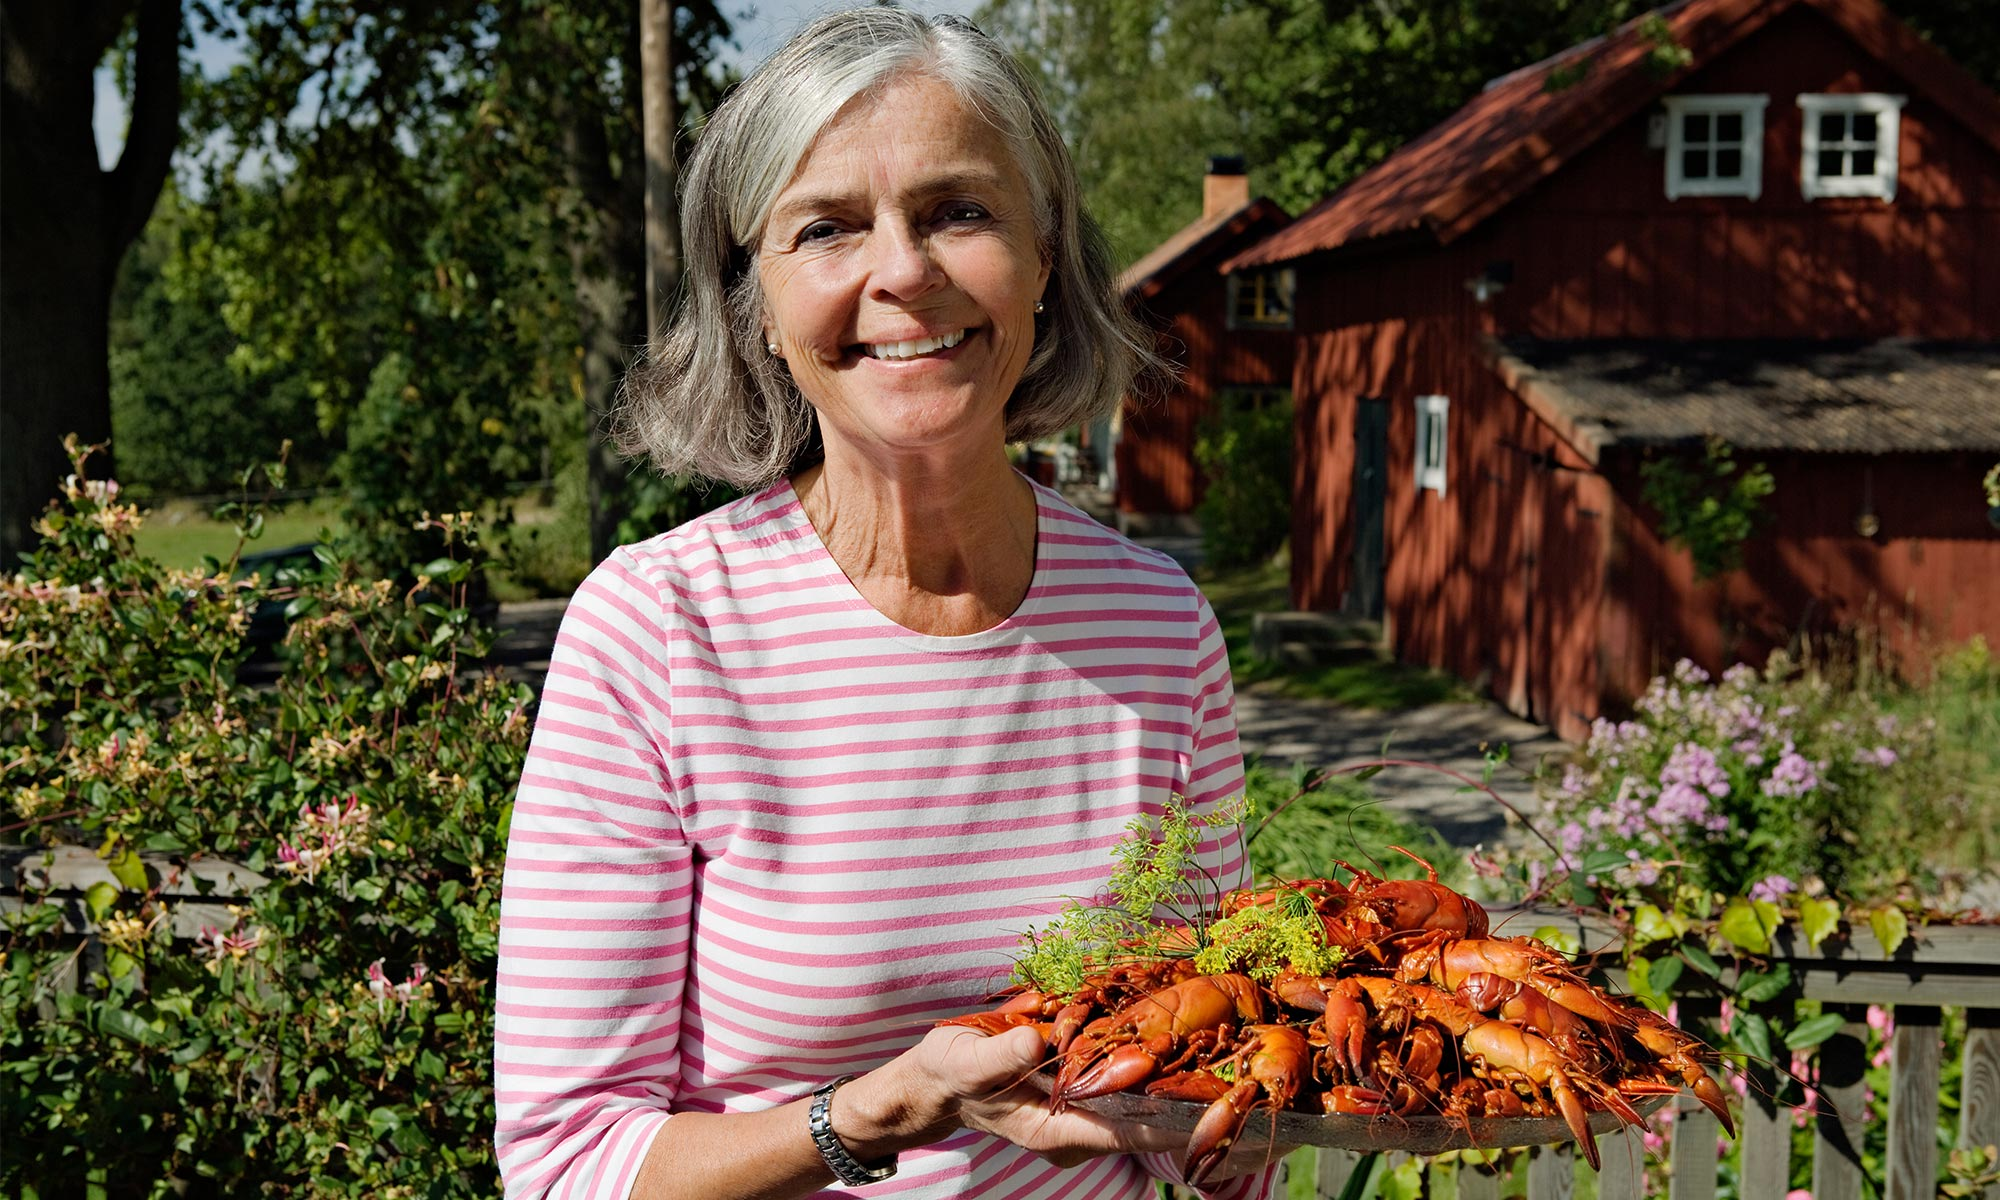 Senior woman holding plate of crayfish in garden.